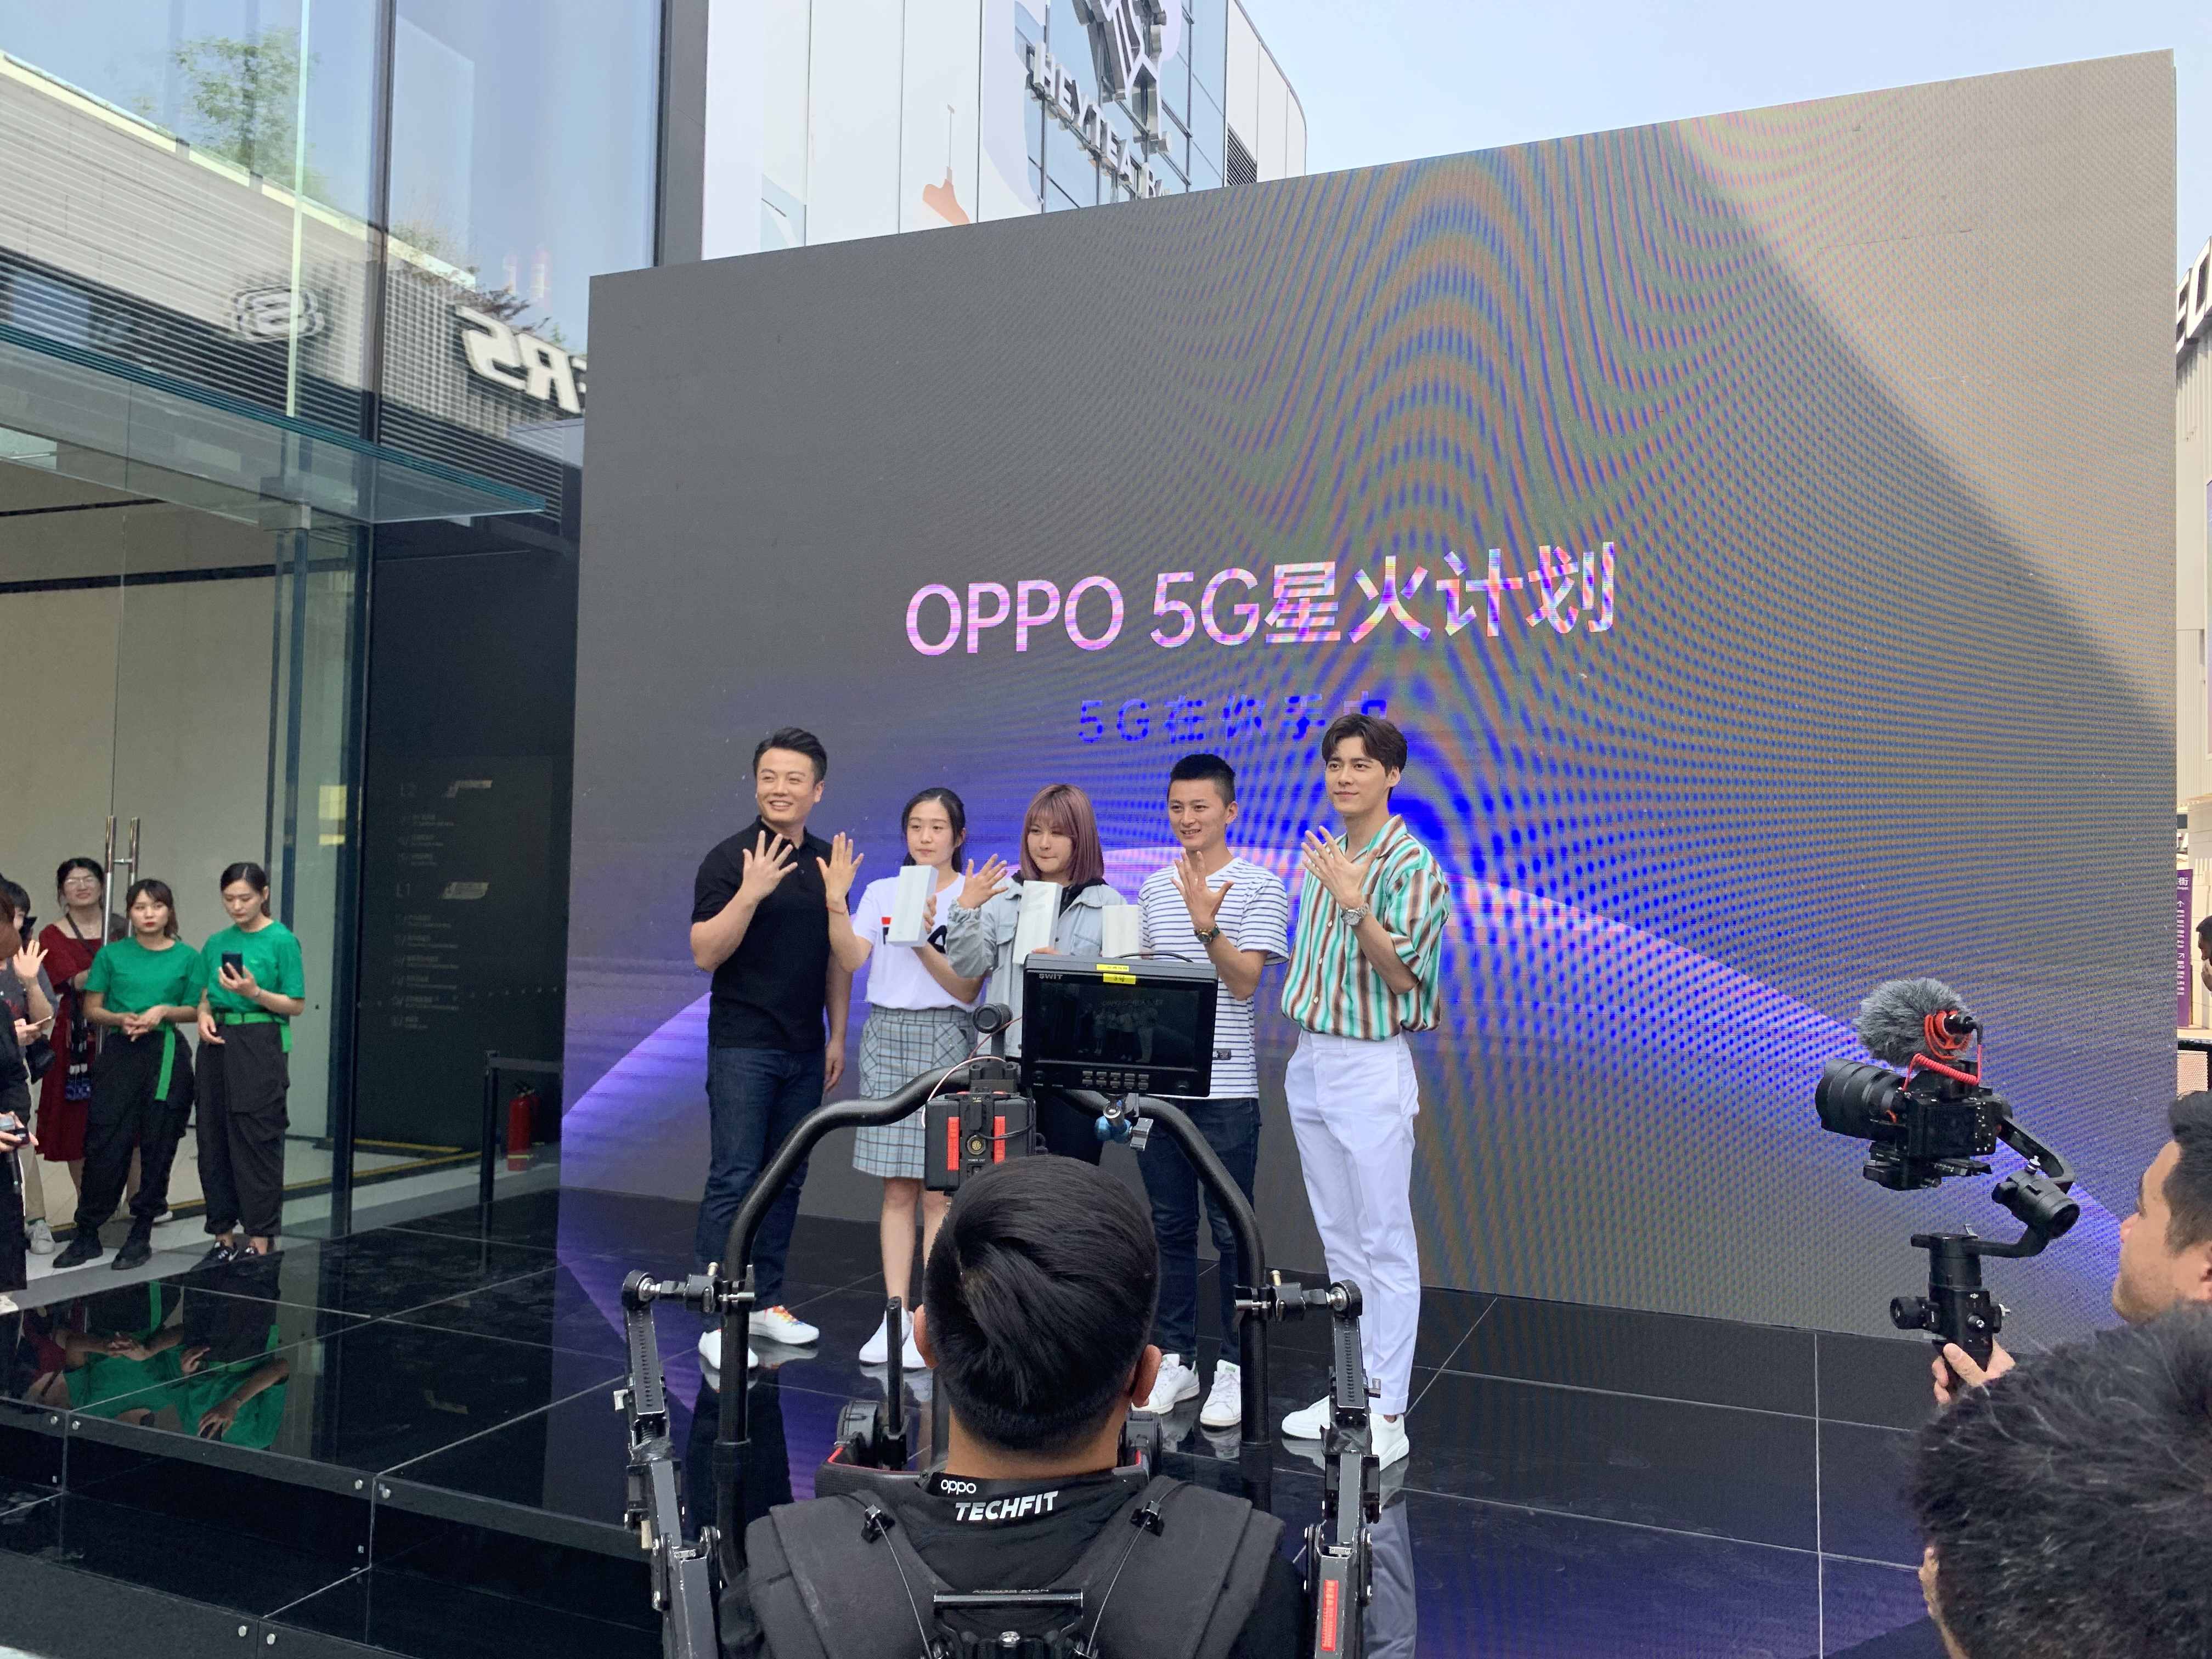 OPPO 5G Spotlight Event